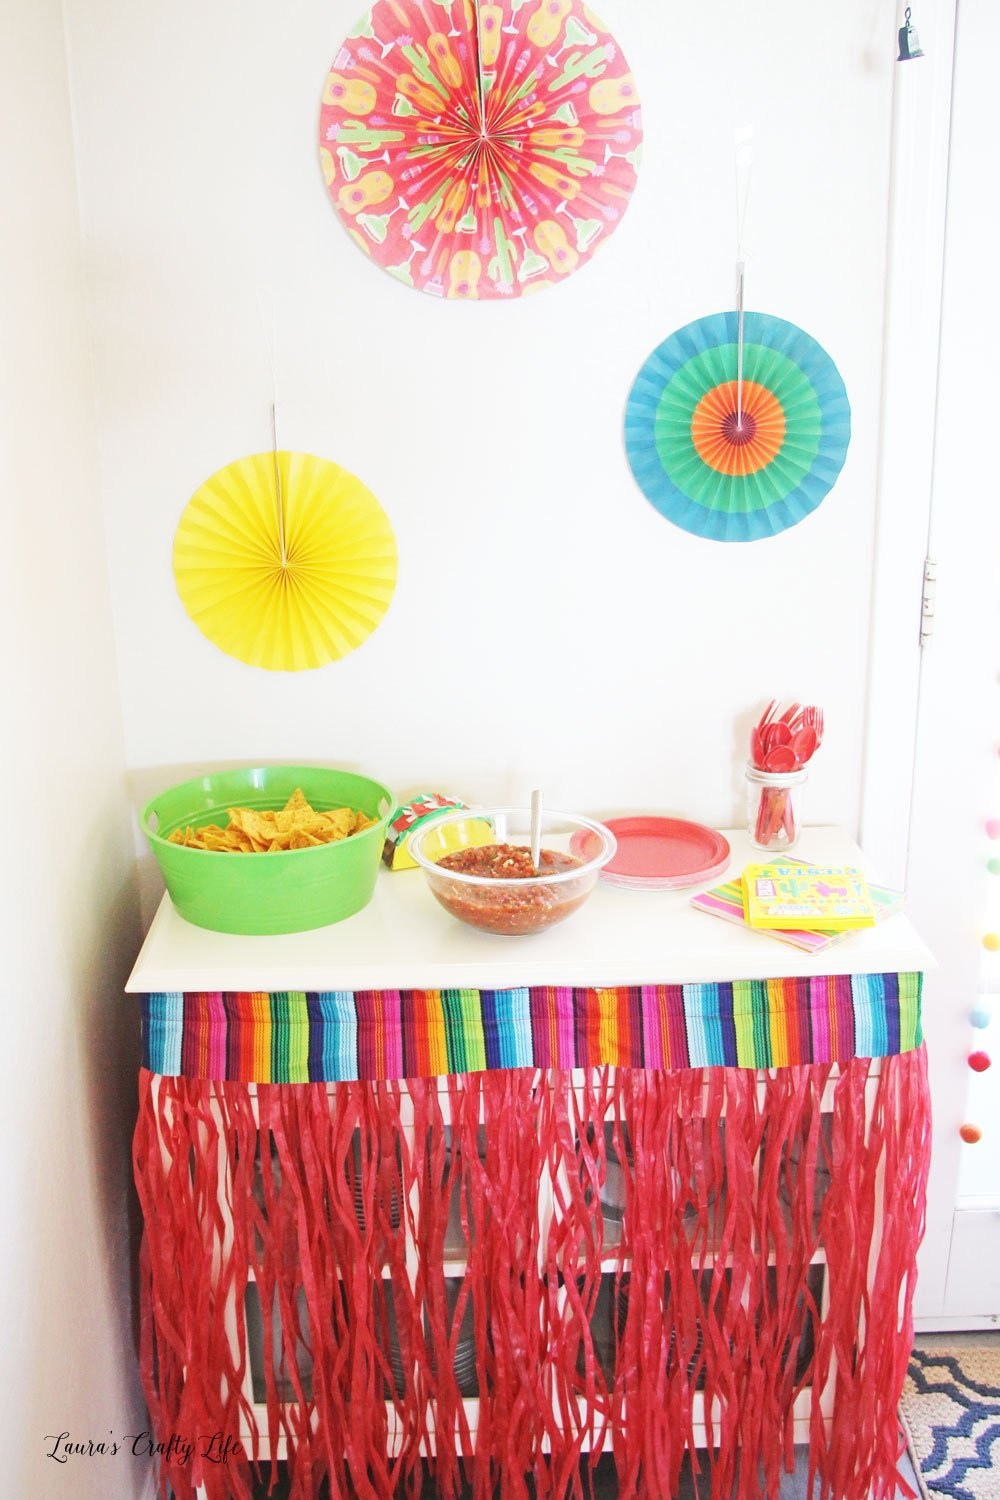 Fiesta fringed table with paper fan decorations